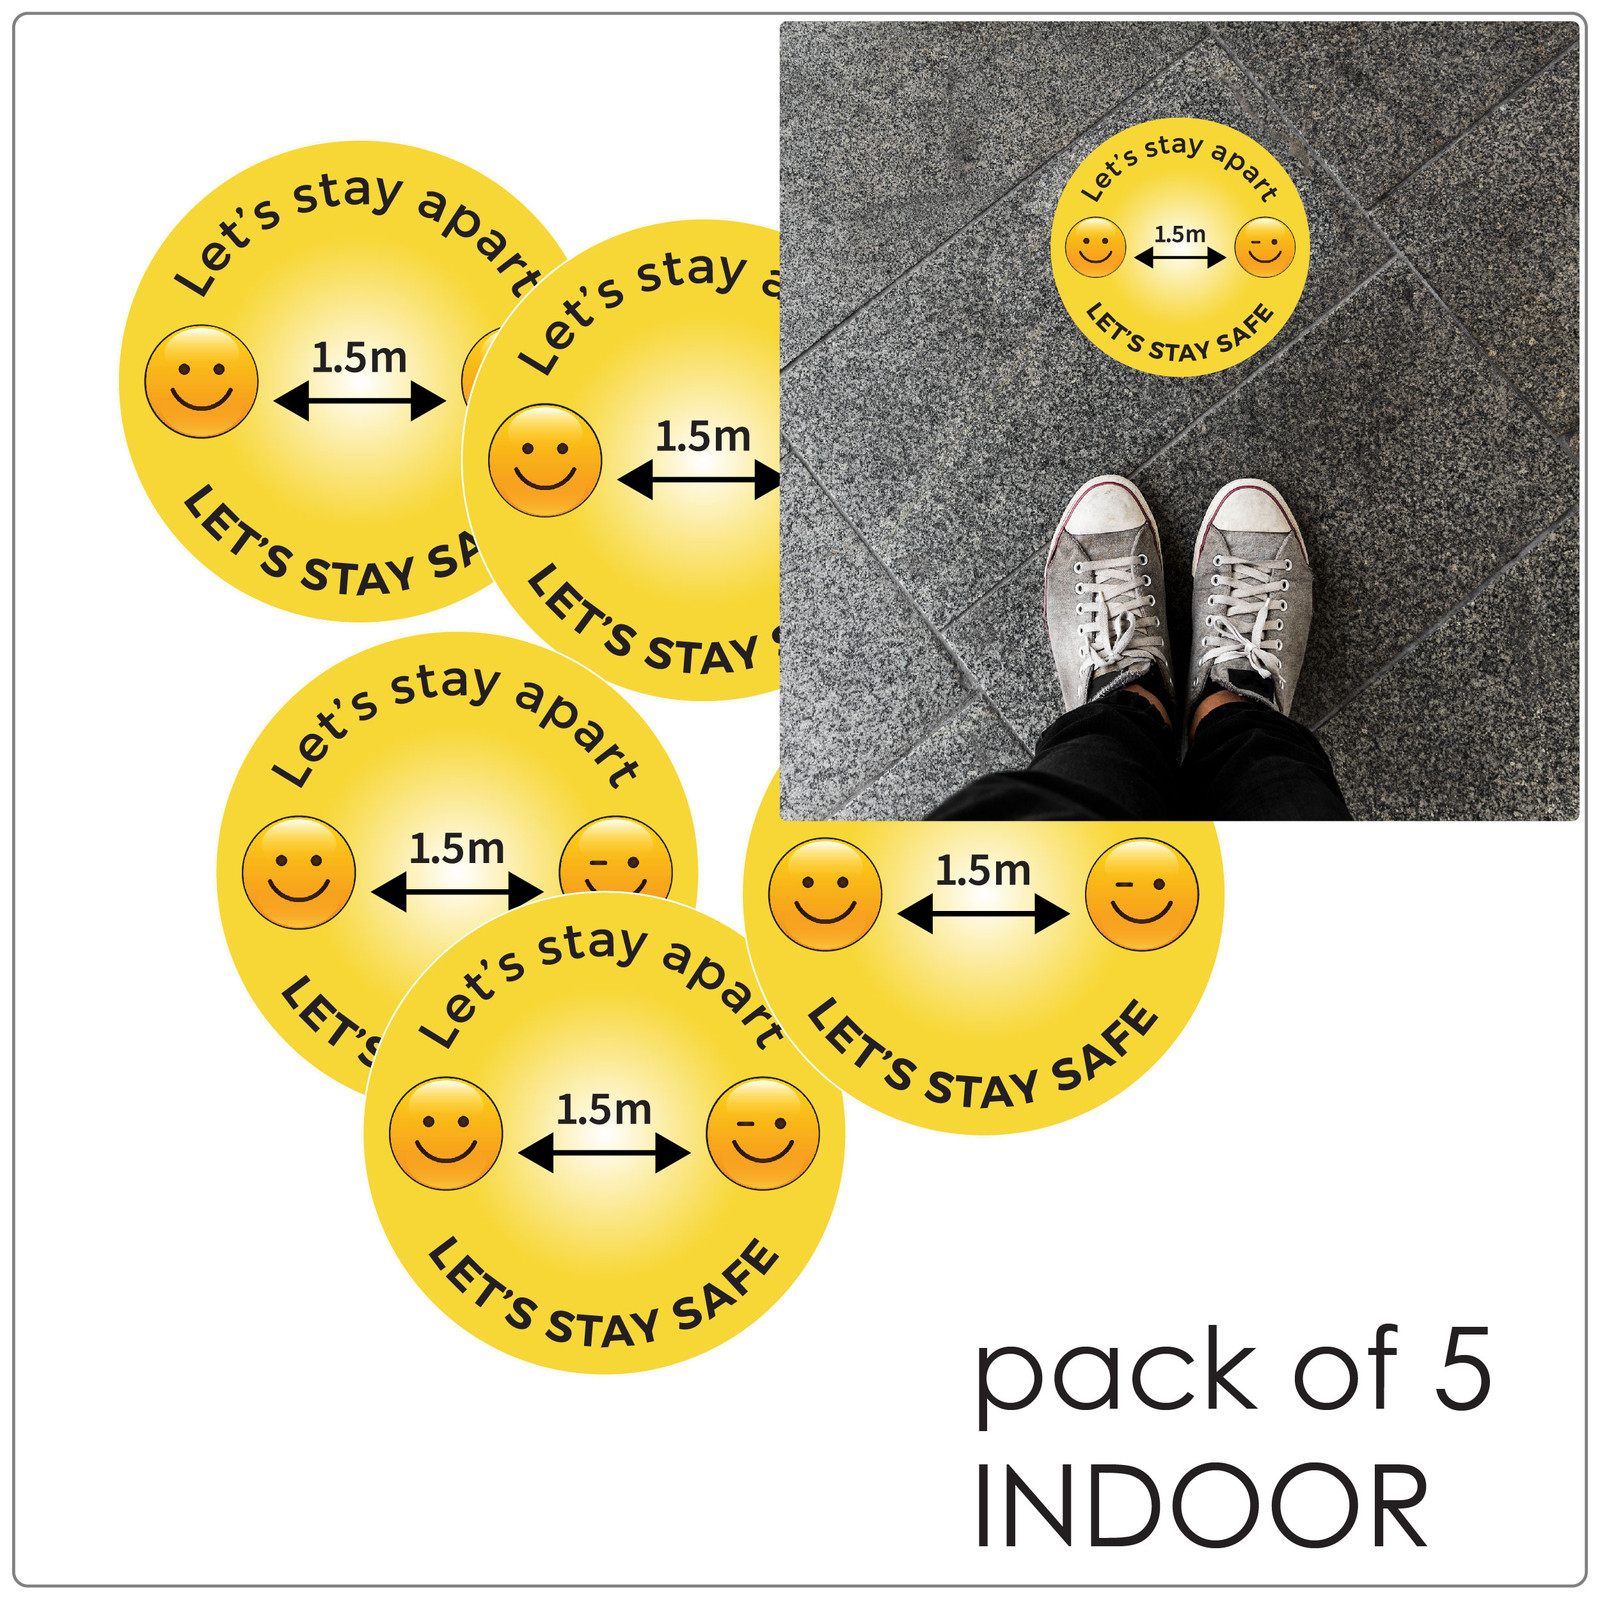 1.5 meter physical distancing floor sticker for hard floors, pack of 5, emoji Self-adhesive Corona floor marker safety floor signs for COVID-19